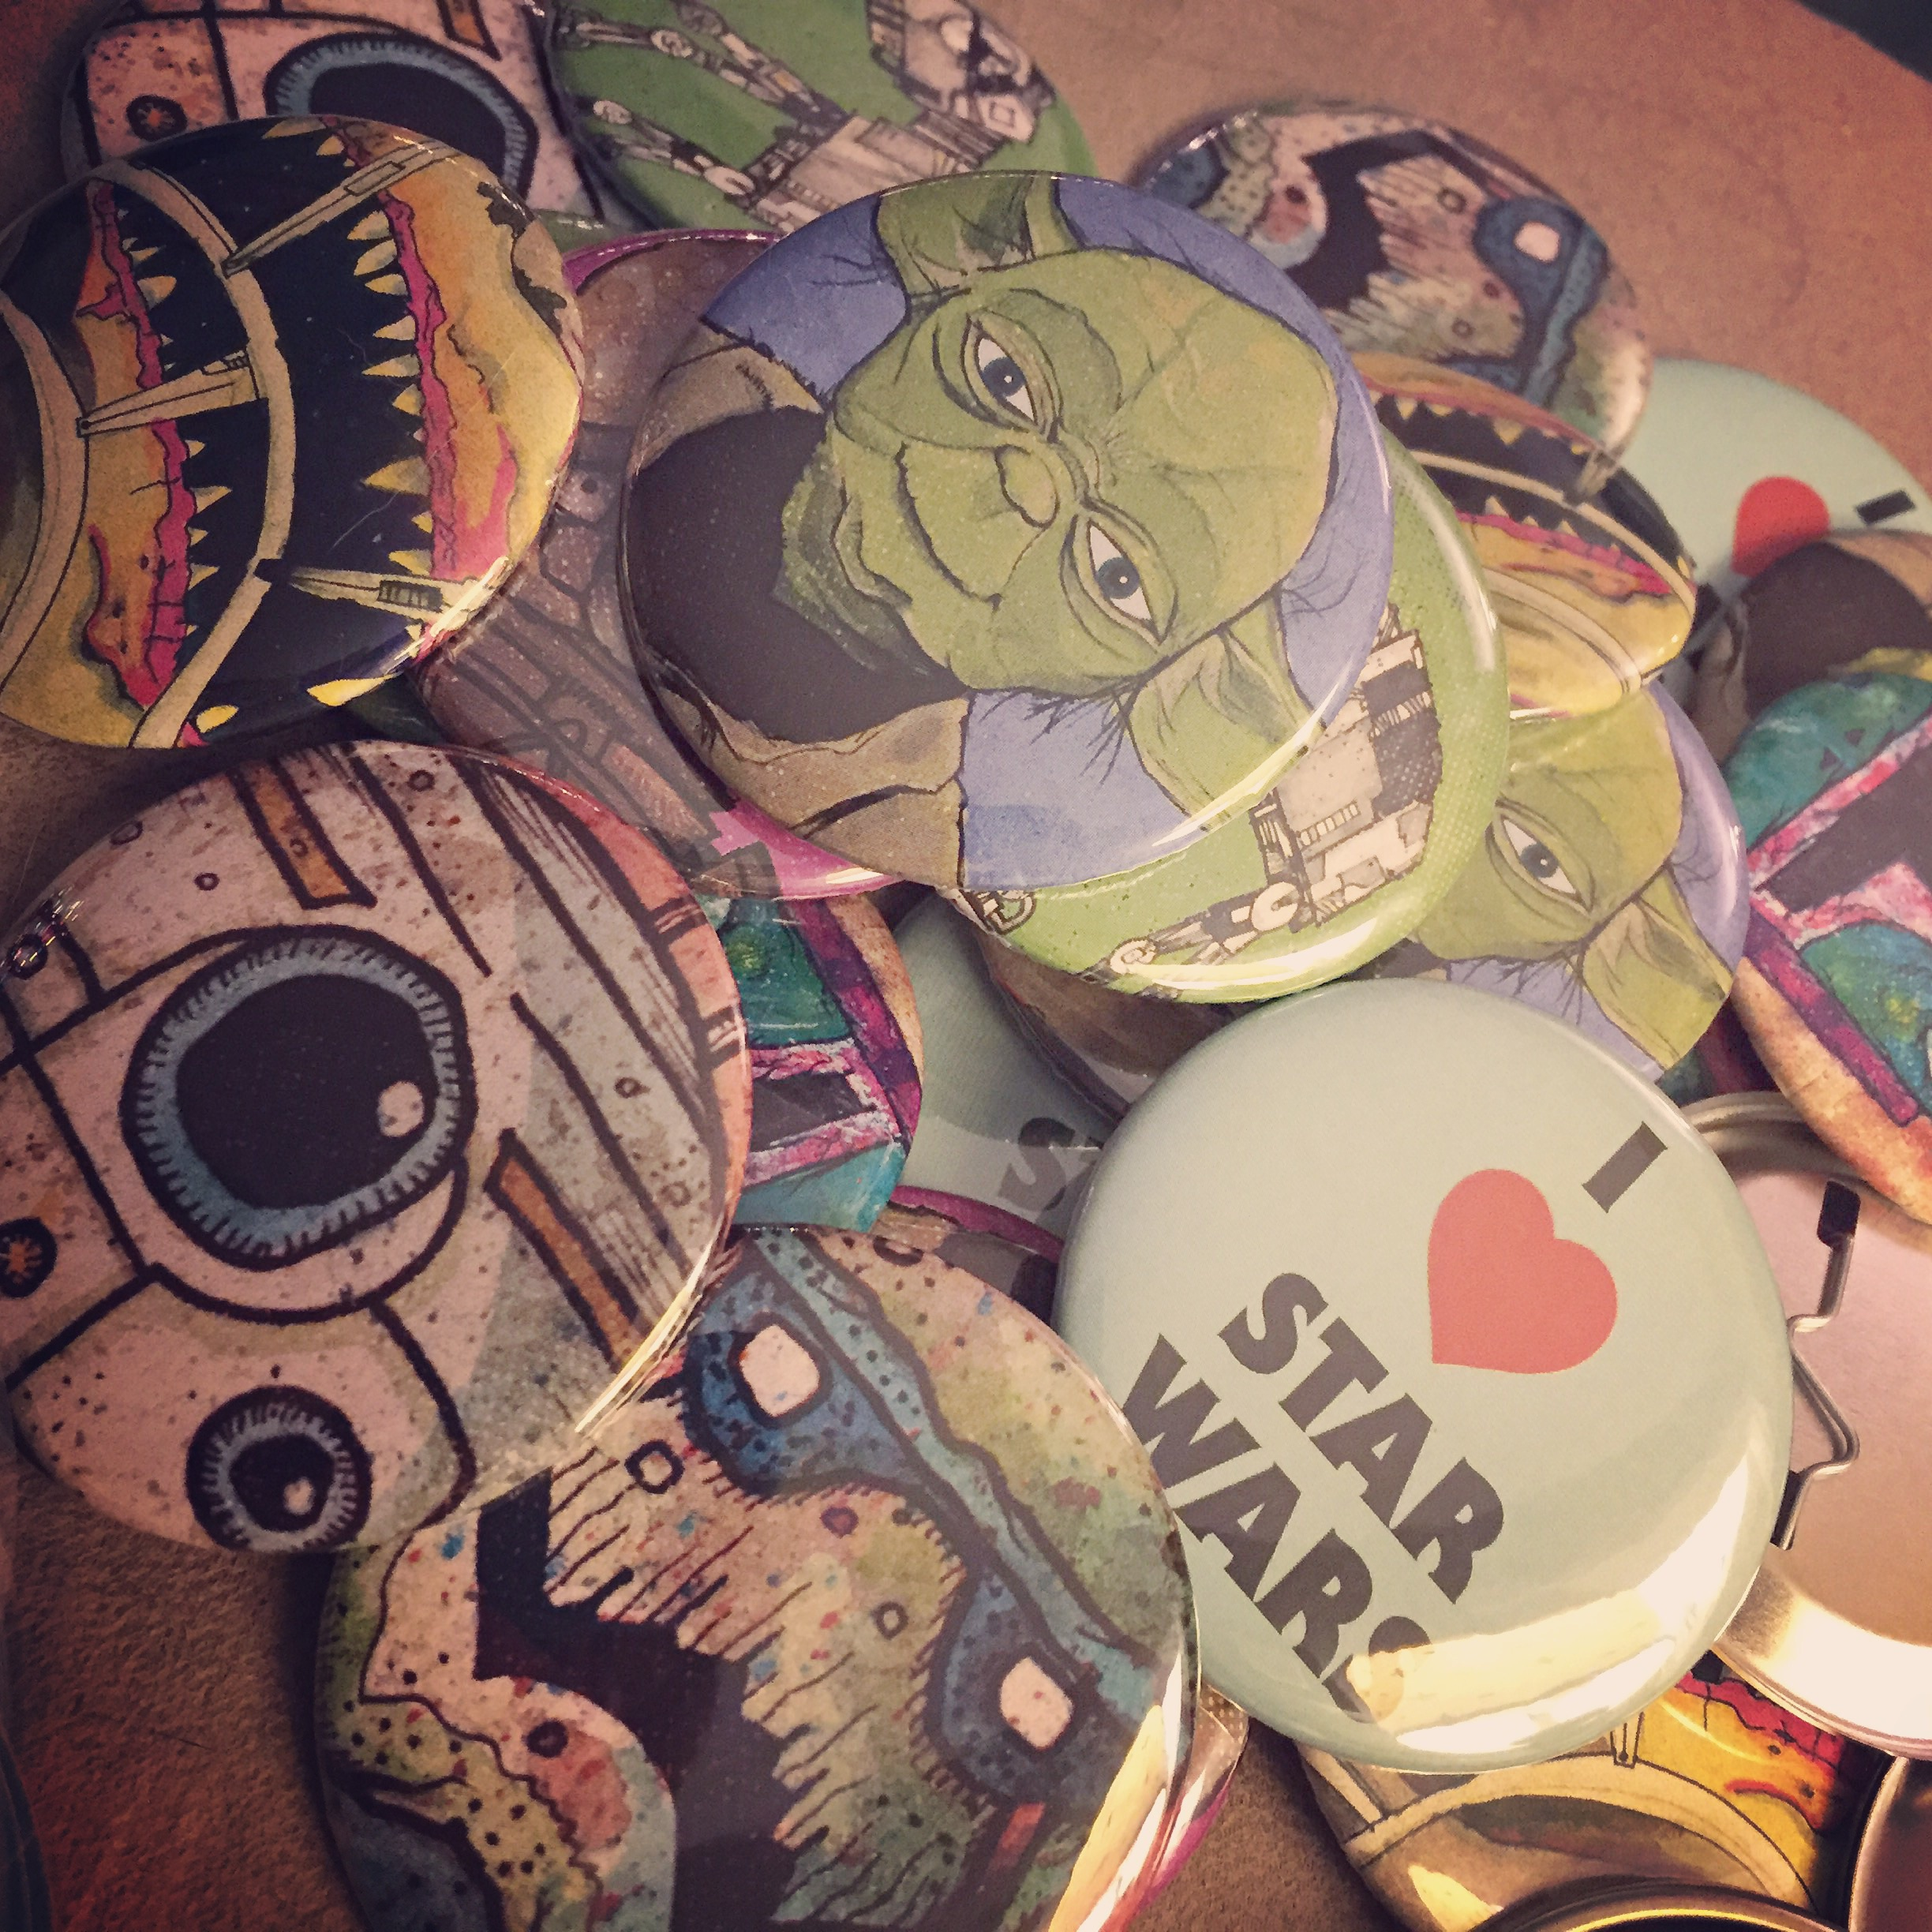 Brand new: Star Wars buttons from my art!